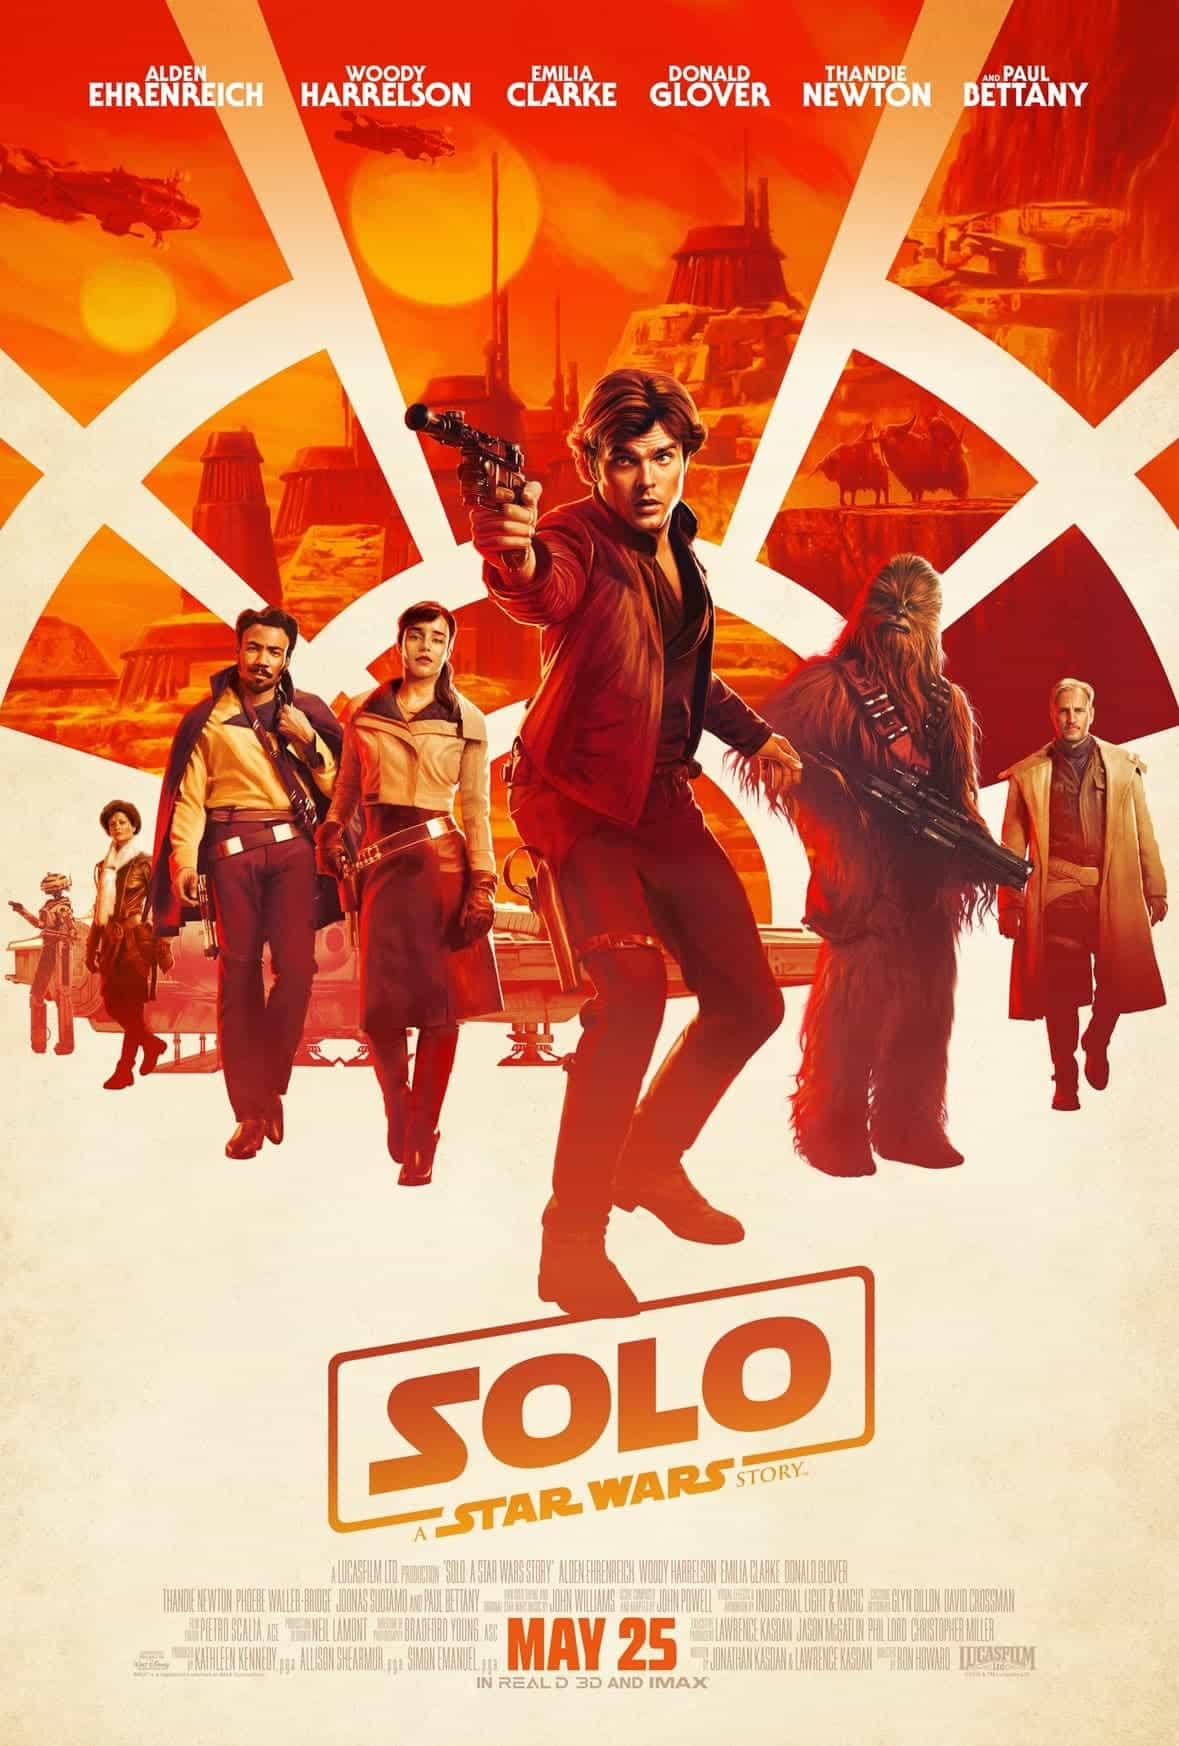 First character teaser posters for Solo - they have a great retro look and feel of Han Solo